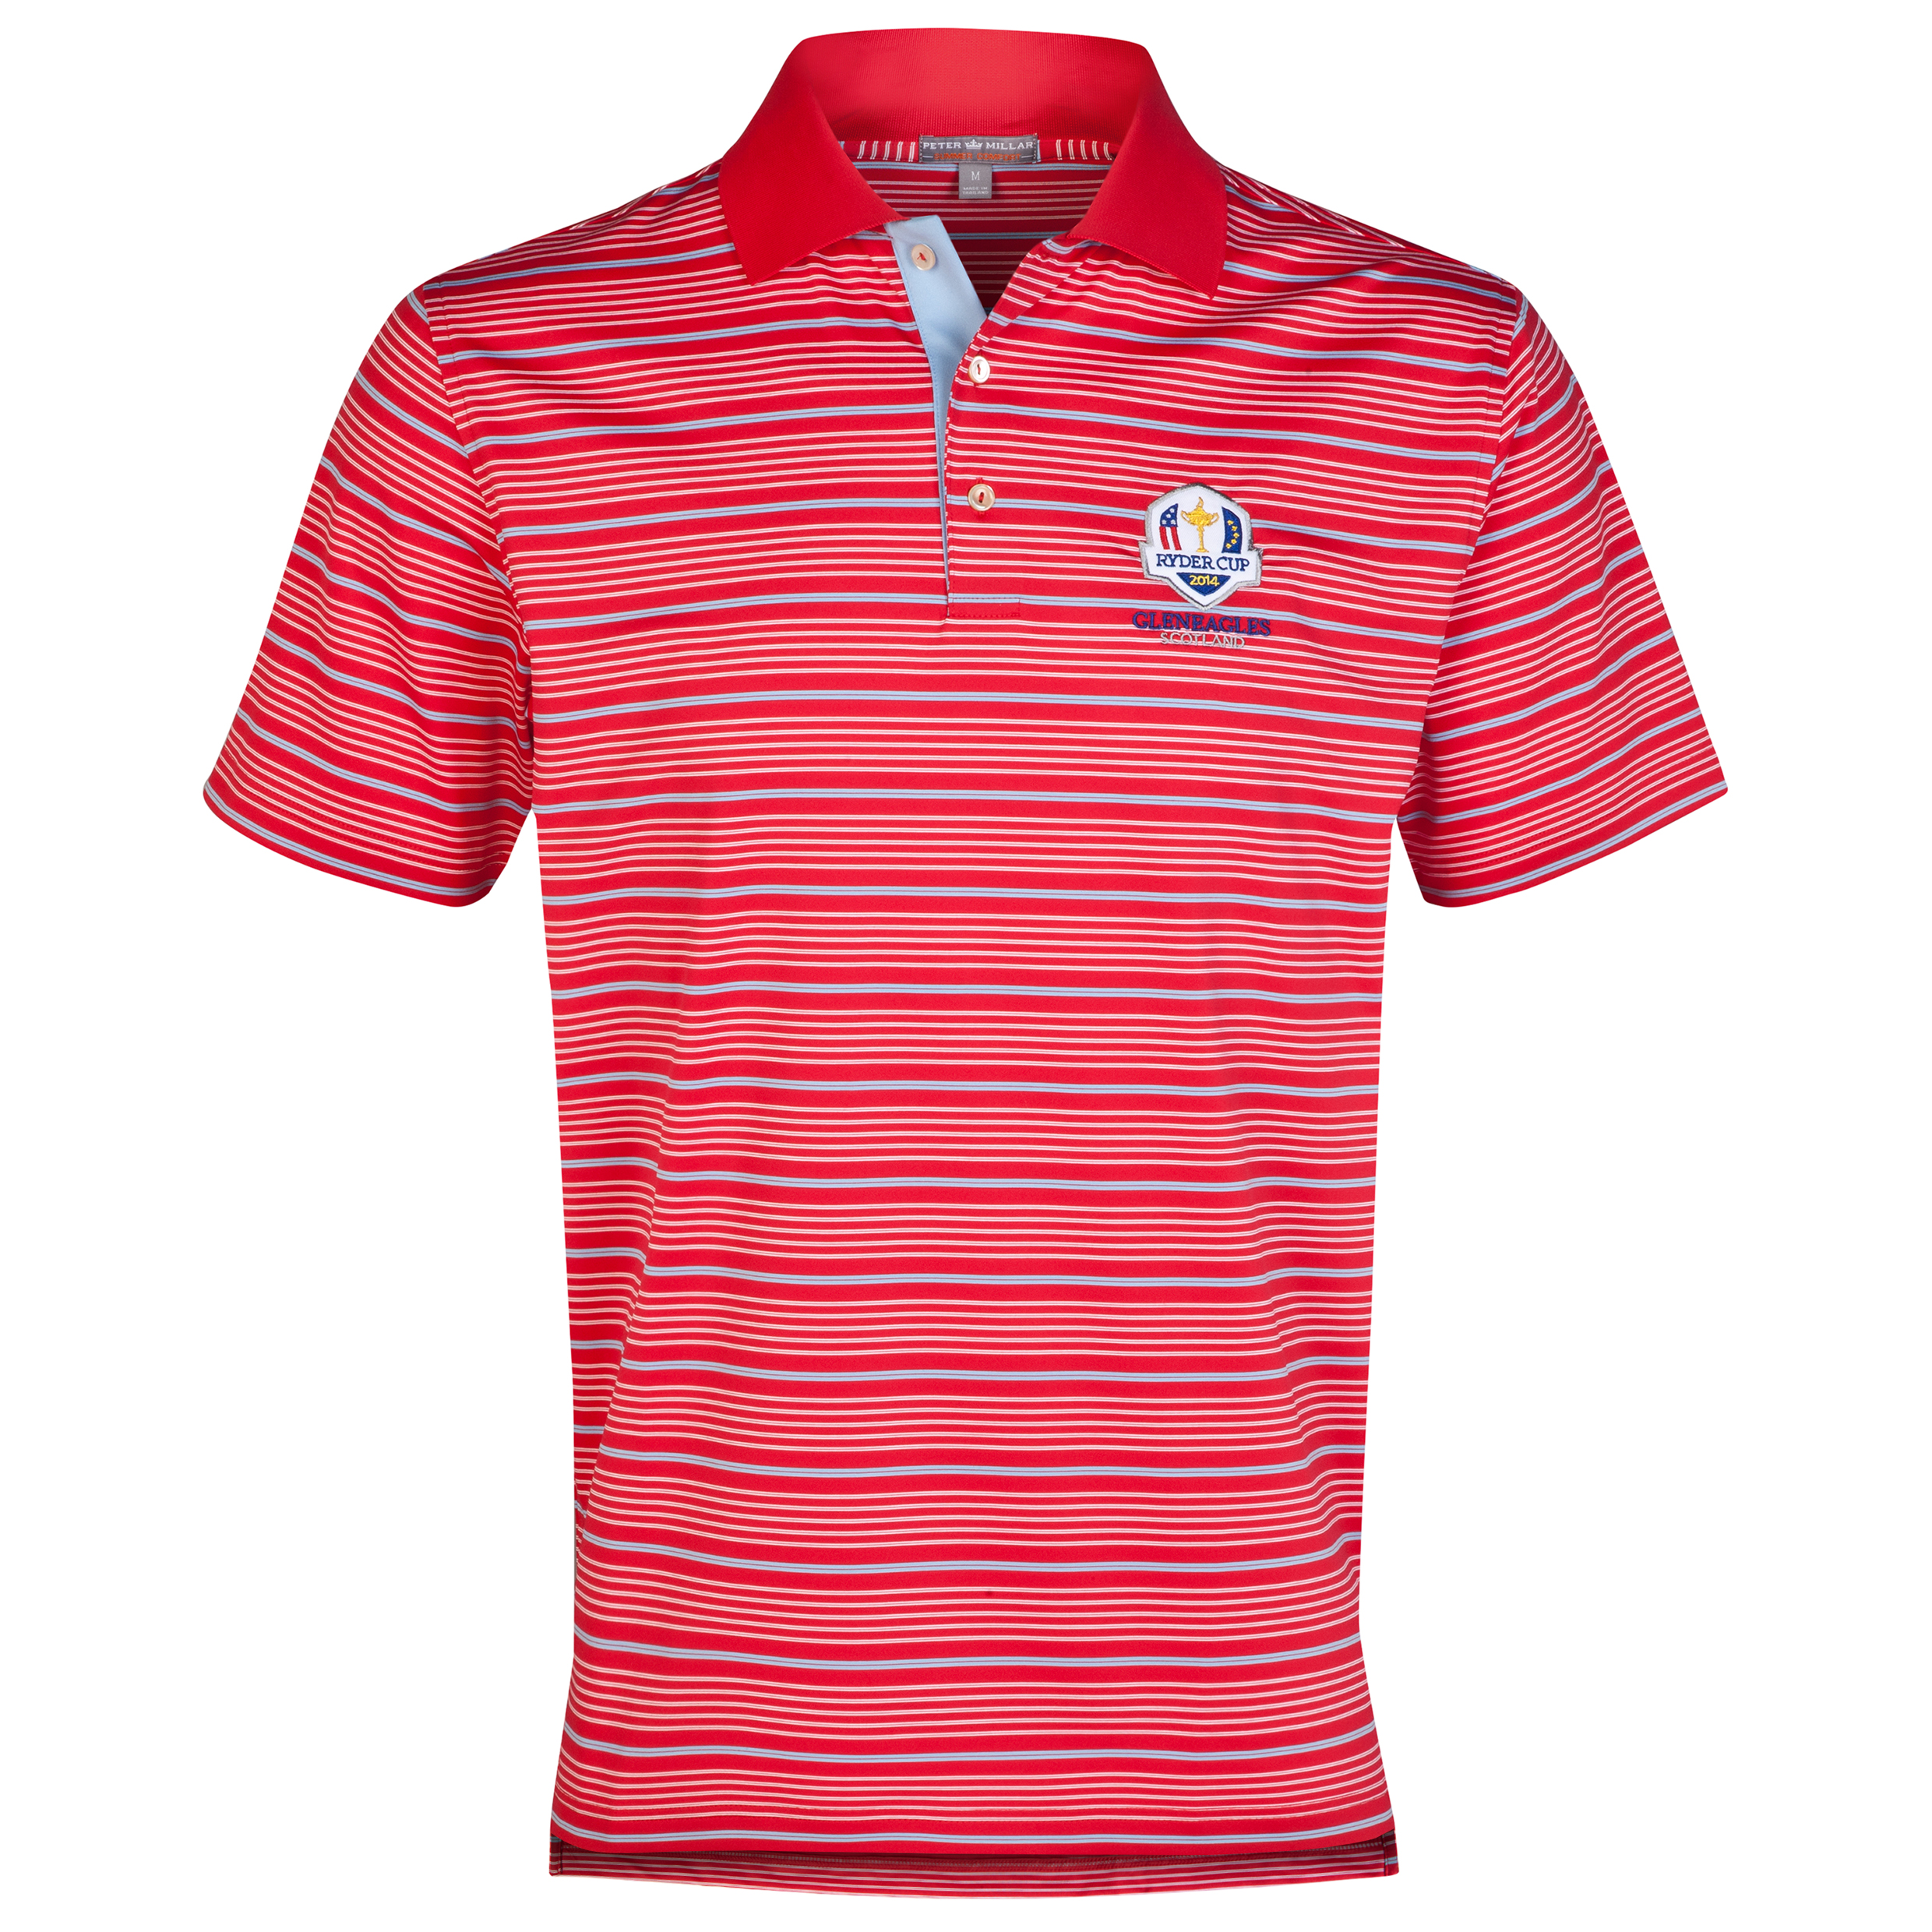 The 2014 Ryder Cup Peter Millar Staley Stripe Stretch Polo